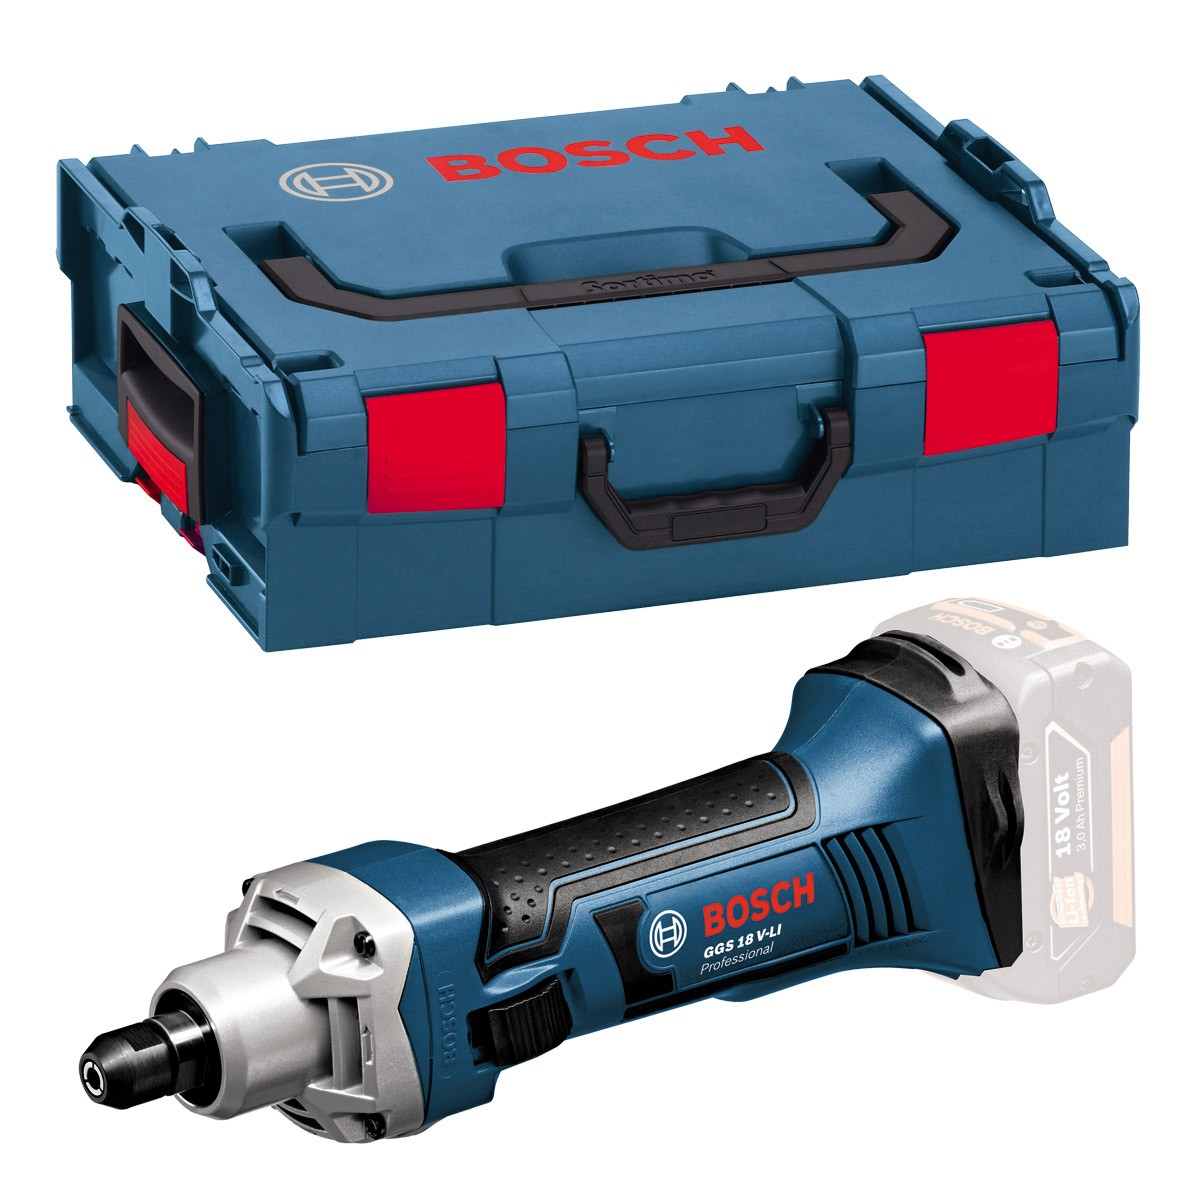 Bosch GGS 18 V-LI Straight Grinder Body Only in L-Boxx